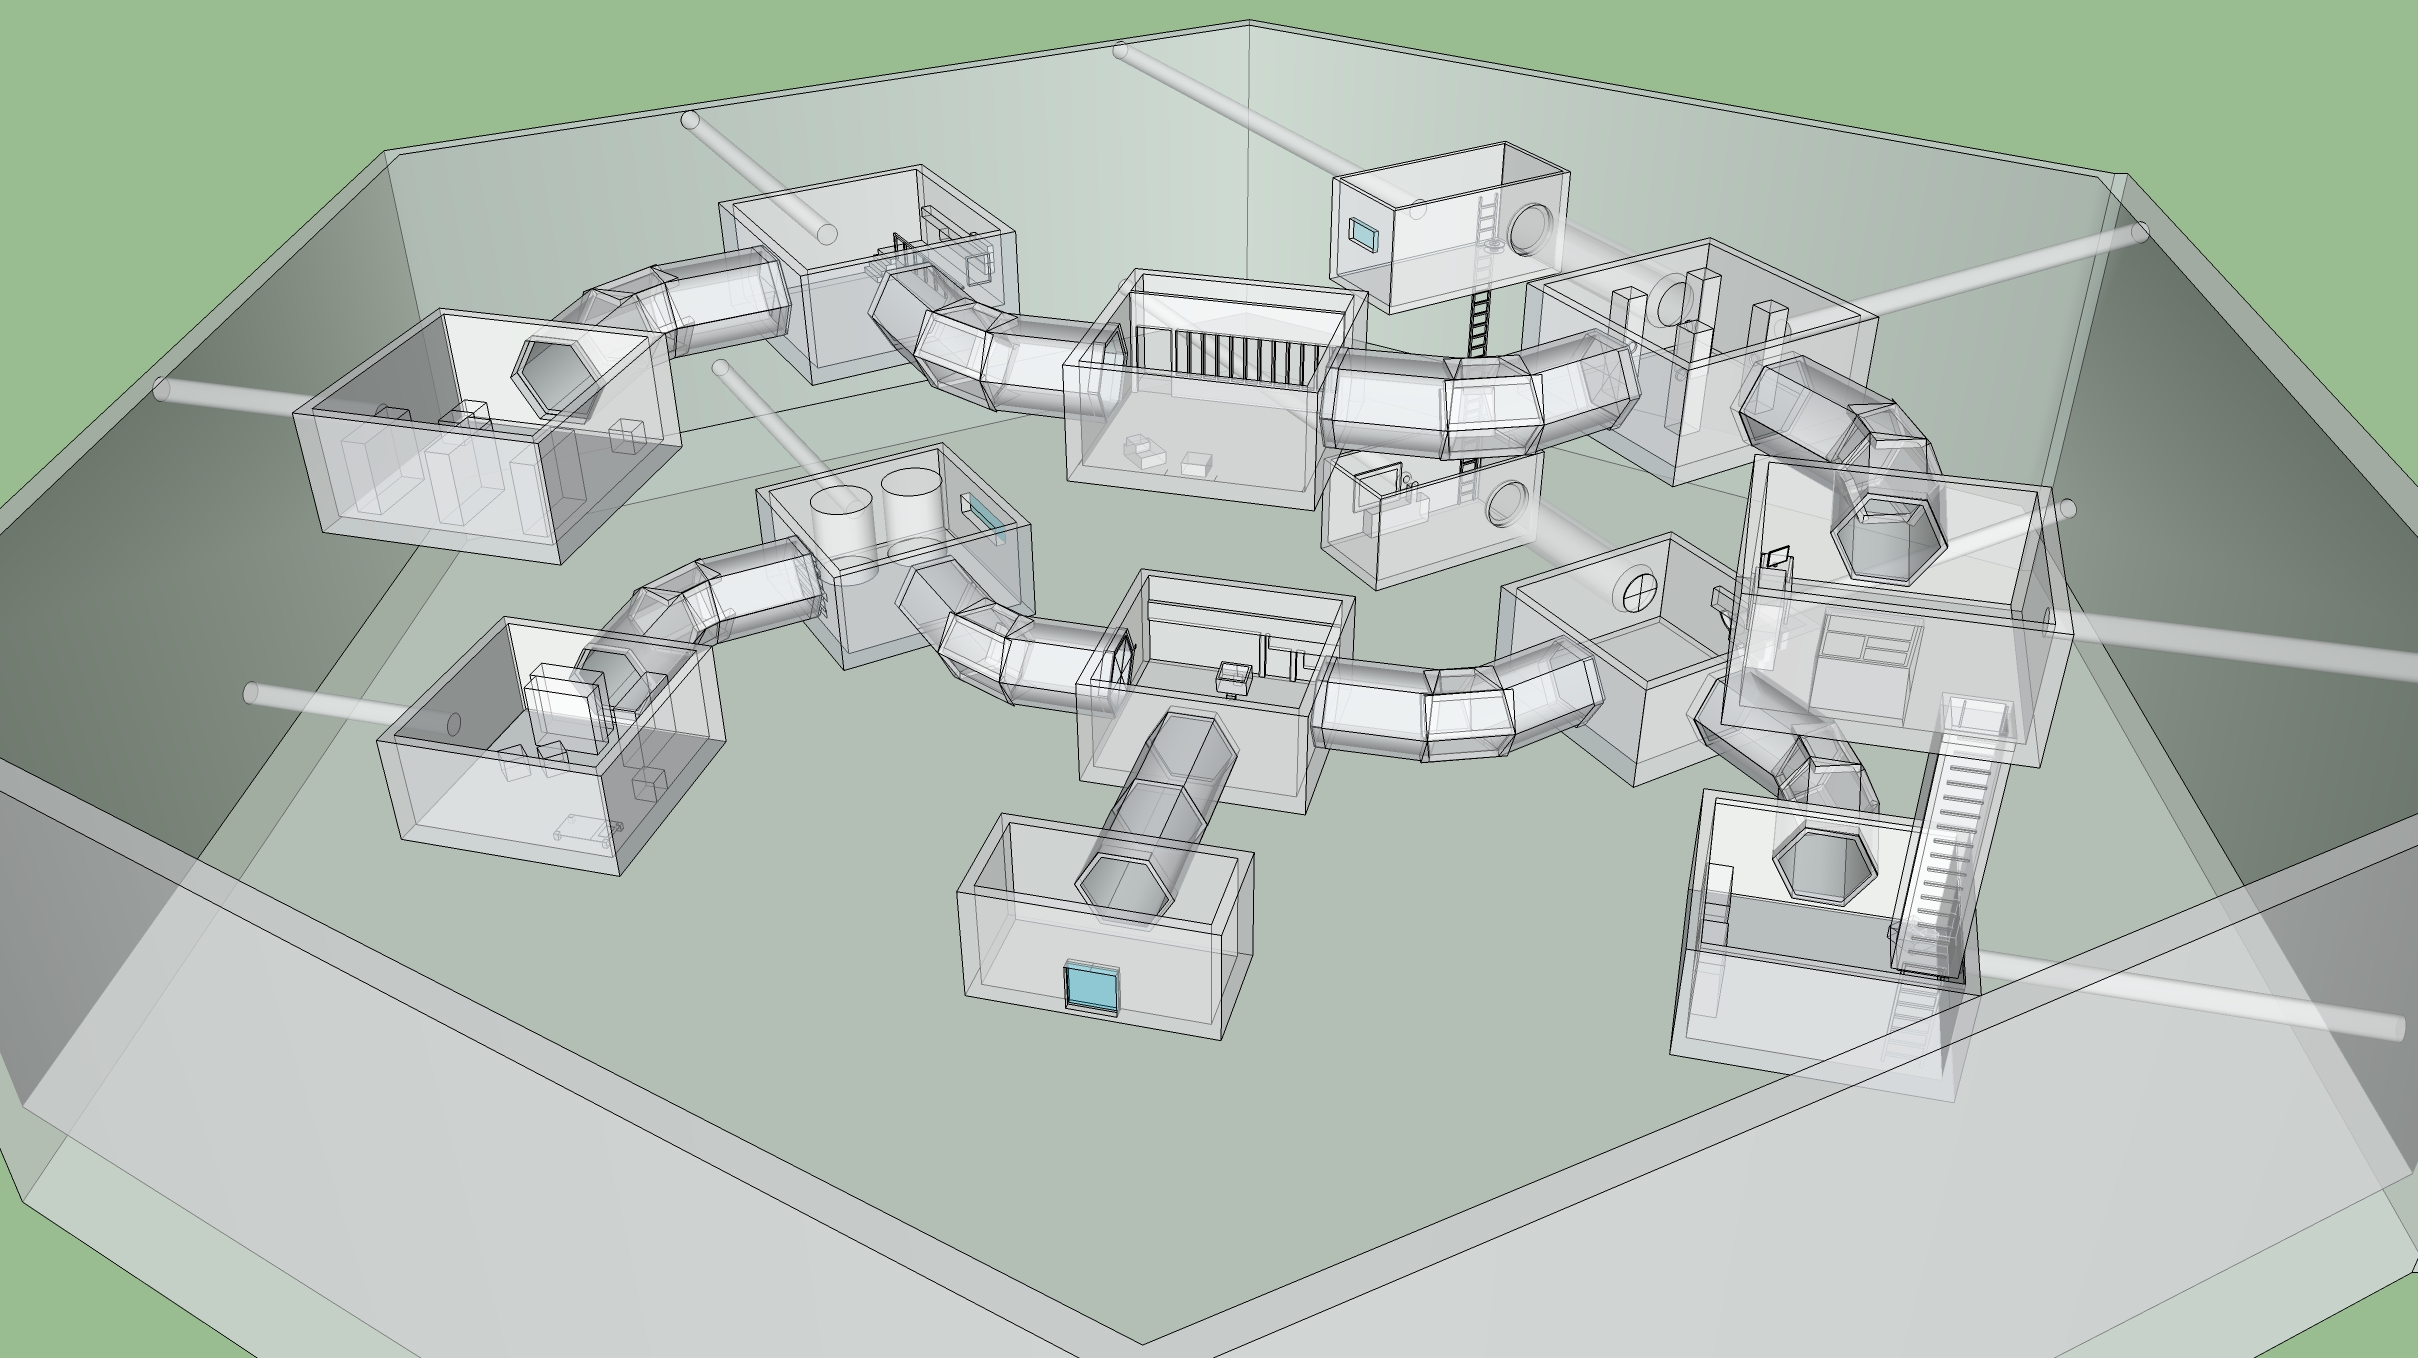 Prey (2017) - Level Design Document for a side mission inside of a fictional DLC for Arkane Studios' Prey. 3D model made with SketchUp.